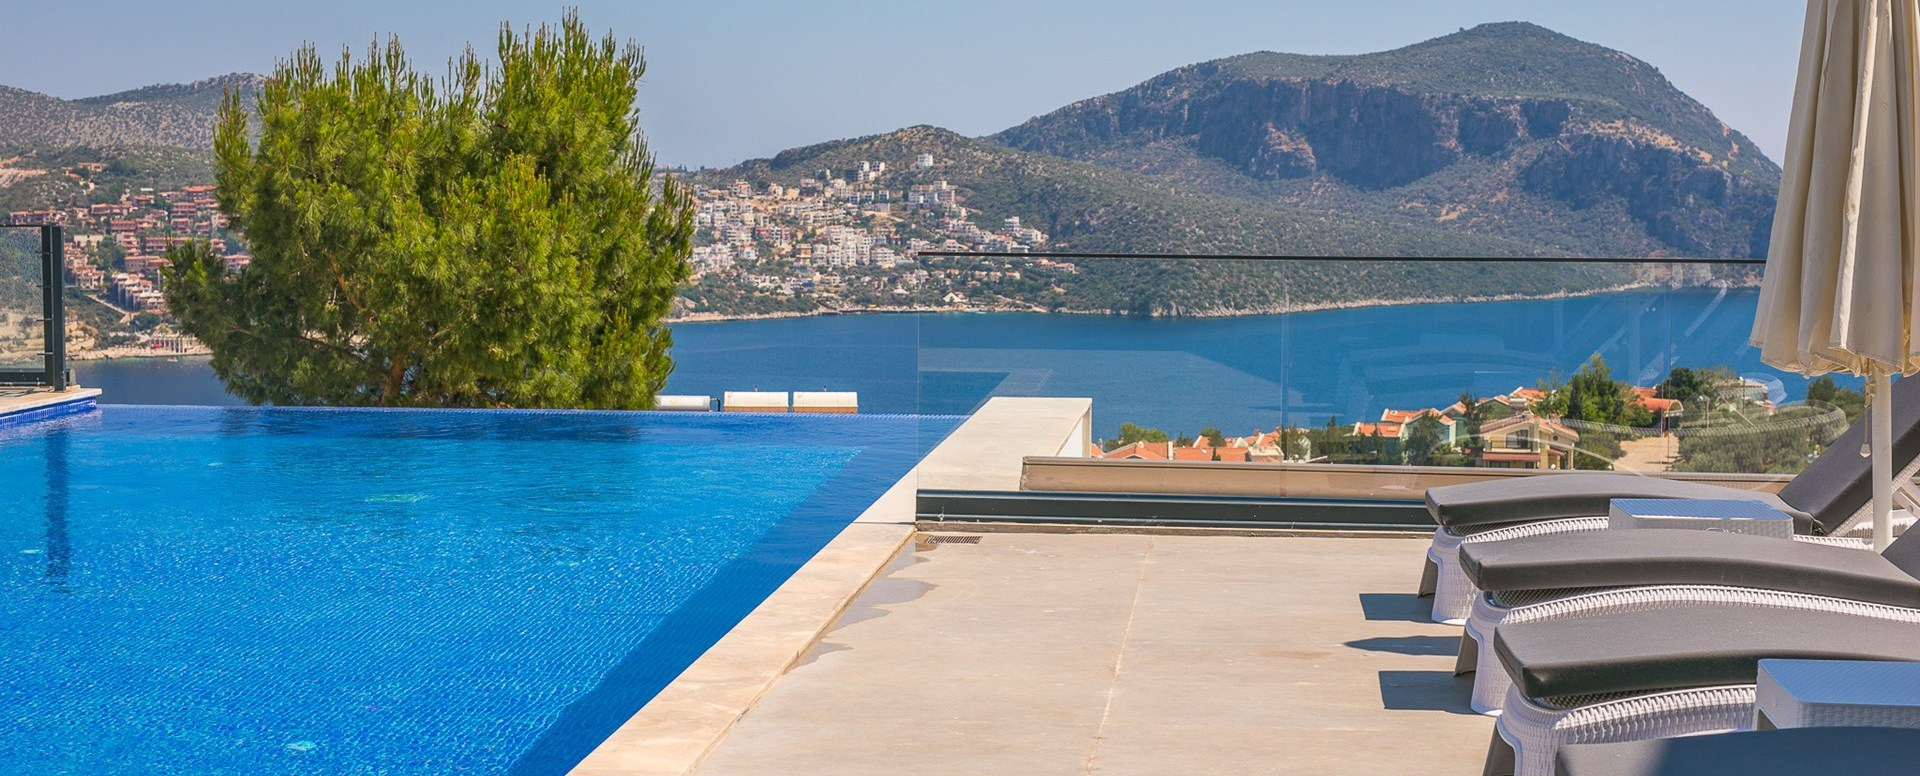 4-bedroom-villa-infinity-pool-kalkan